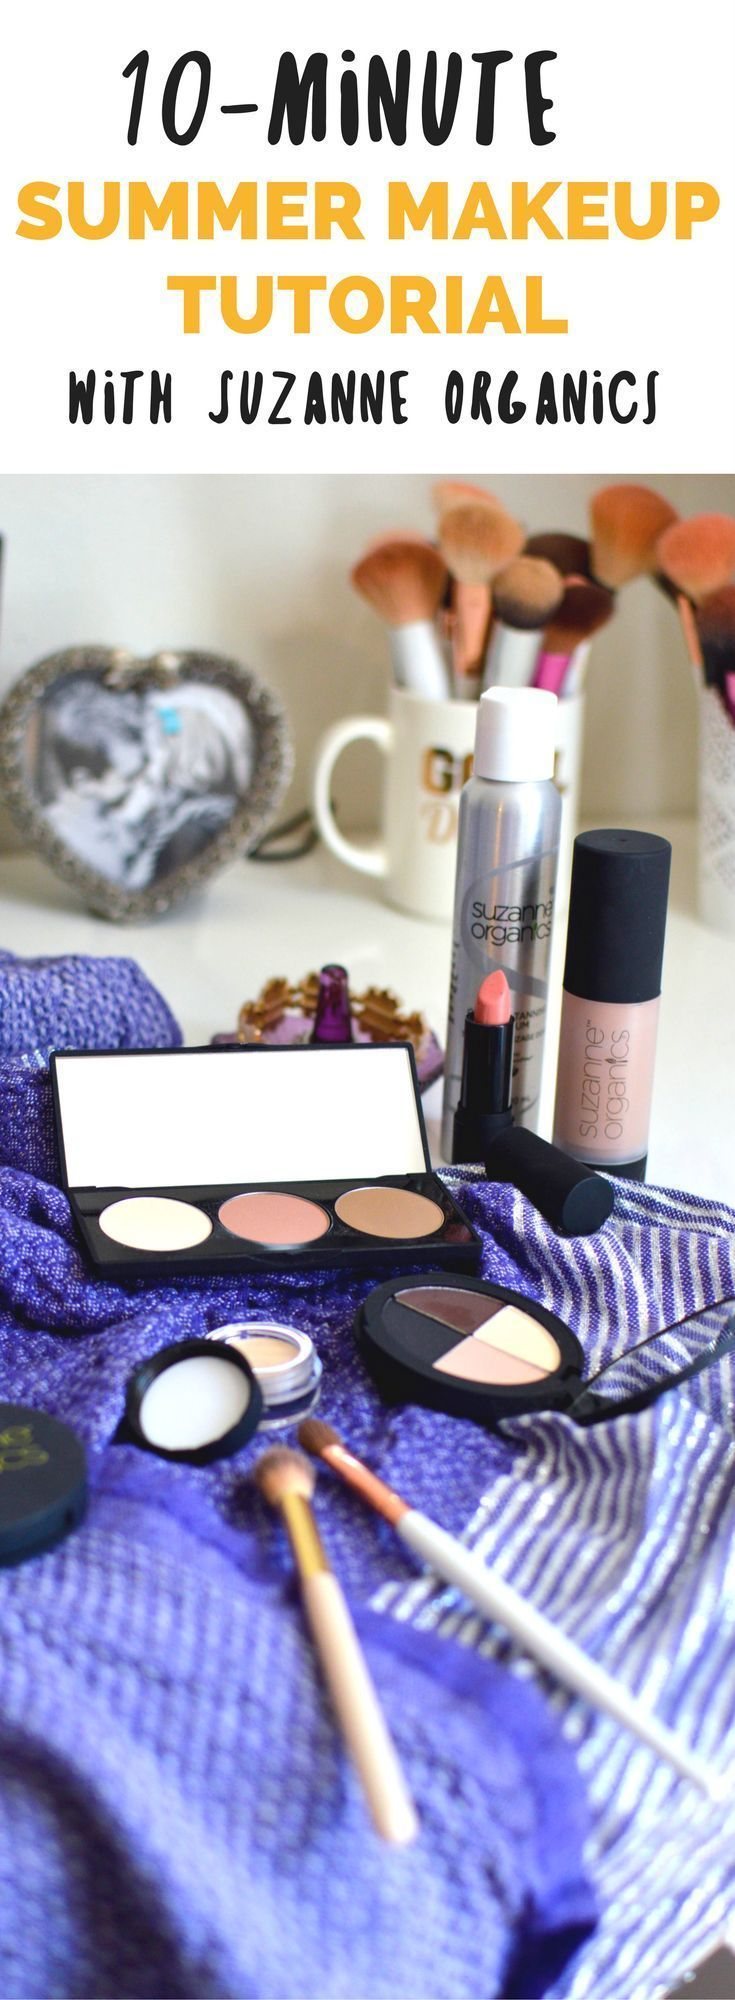 10Minute Summer Makeup Tutorial with Suzanne Somers